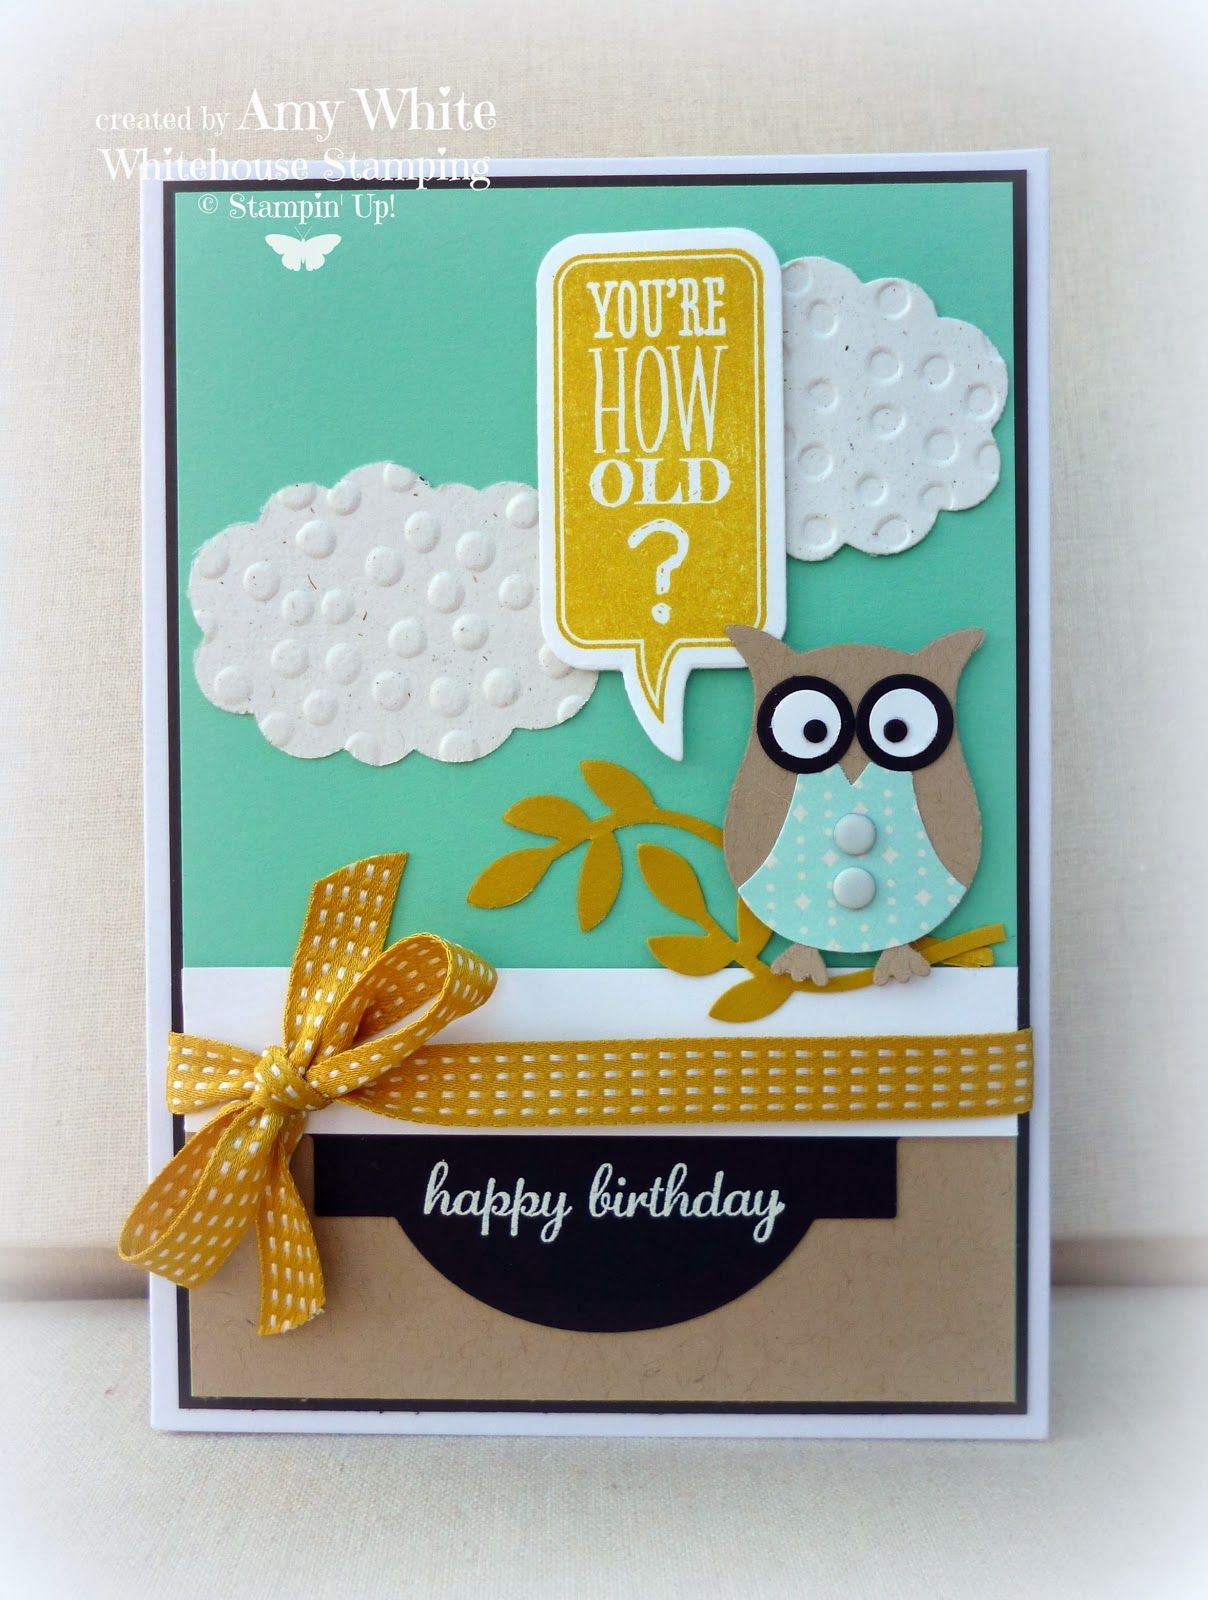 White House Stamping Owls Birthday Greetings Stampin Up – White House Birthday Greetings